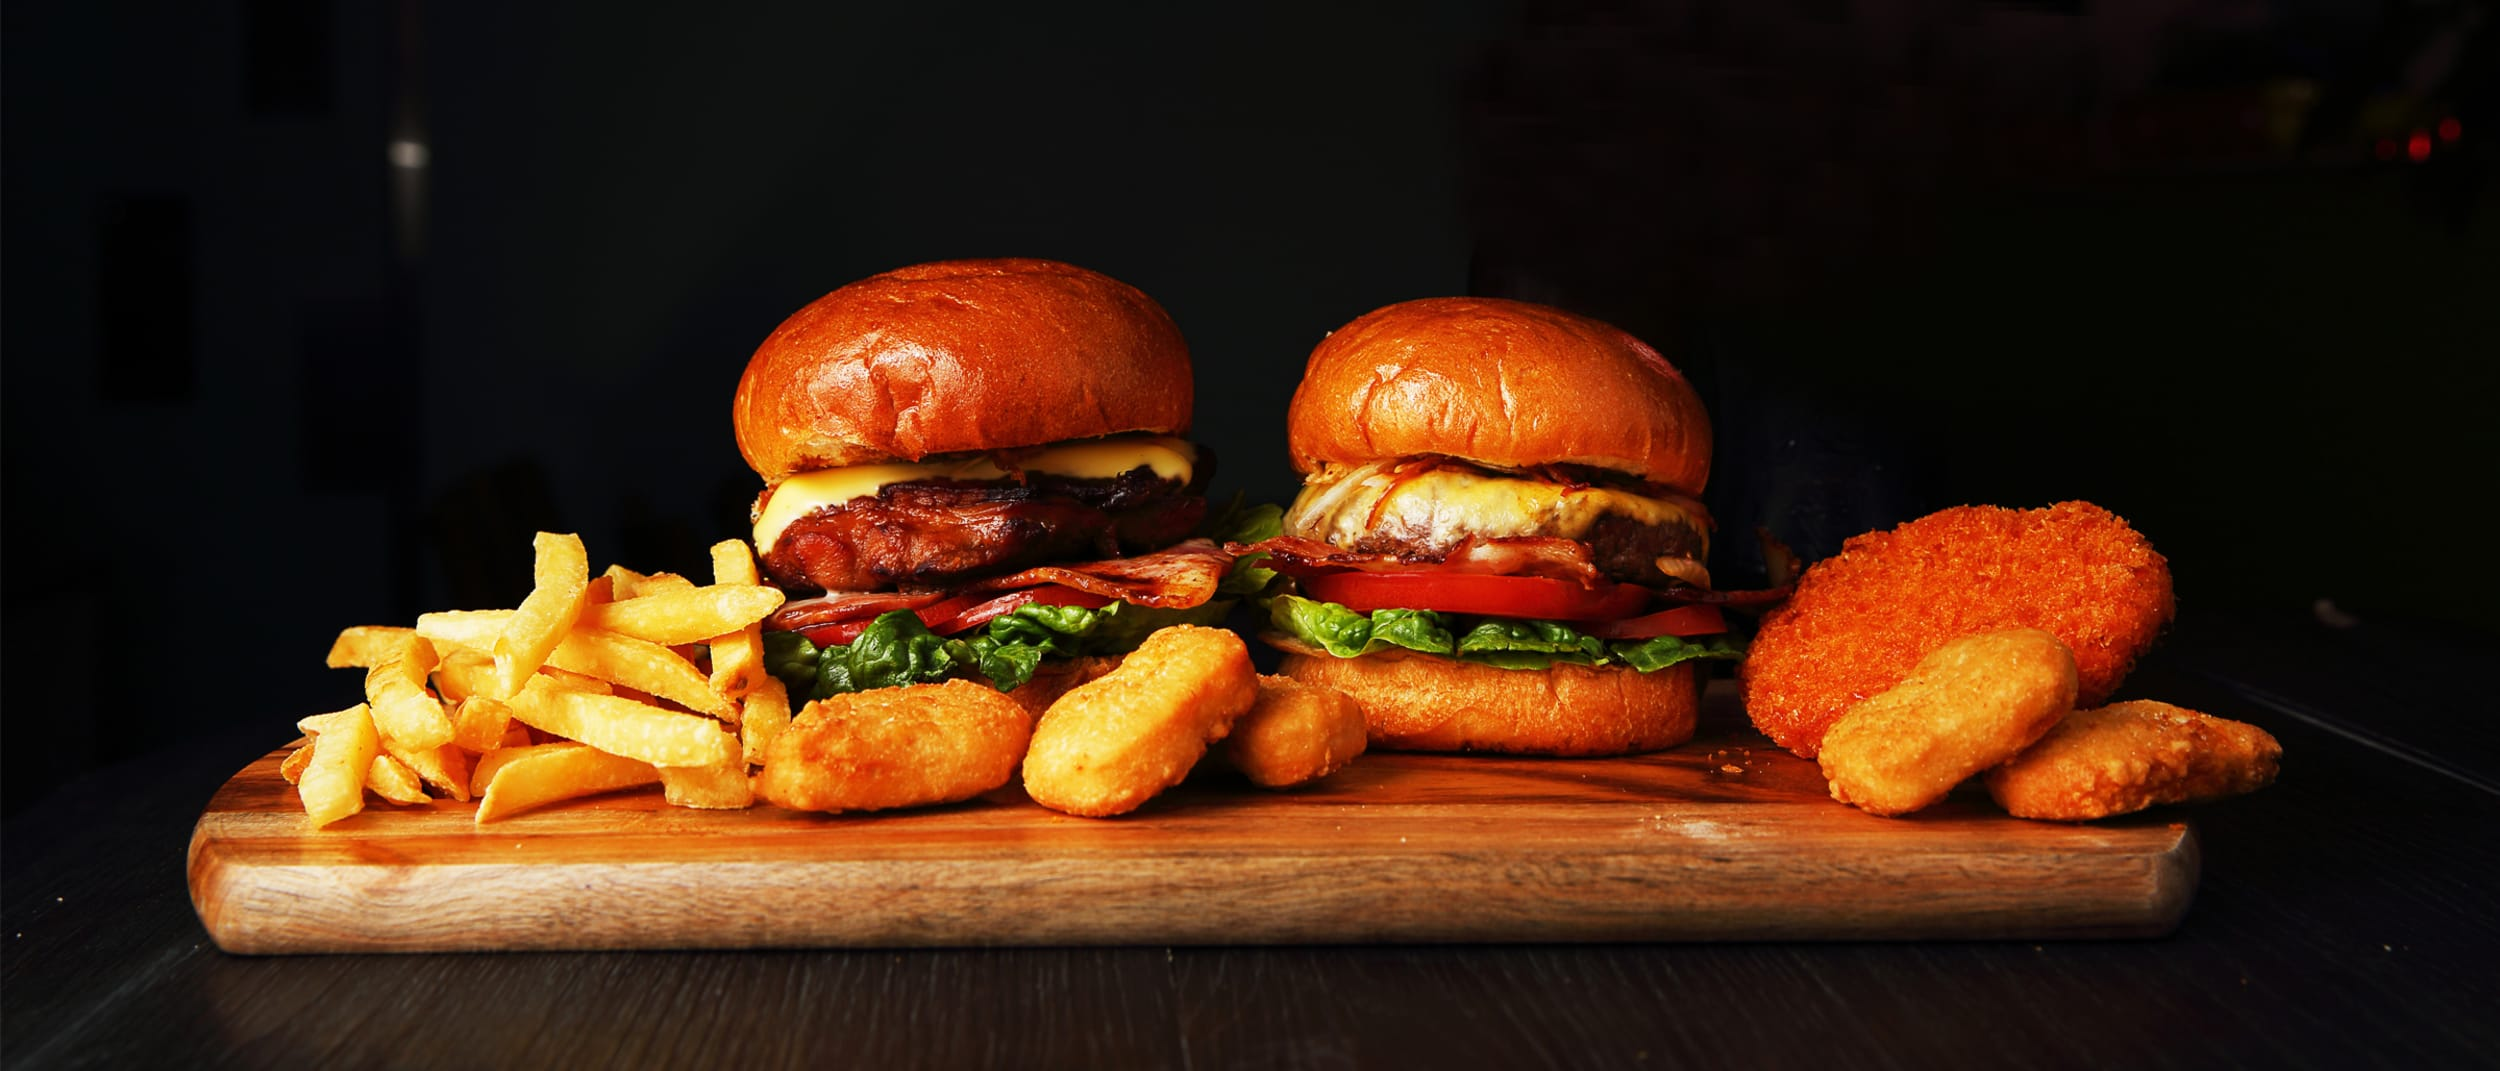 Kingpin- come enjoy a burger every Tuesday for only $13